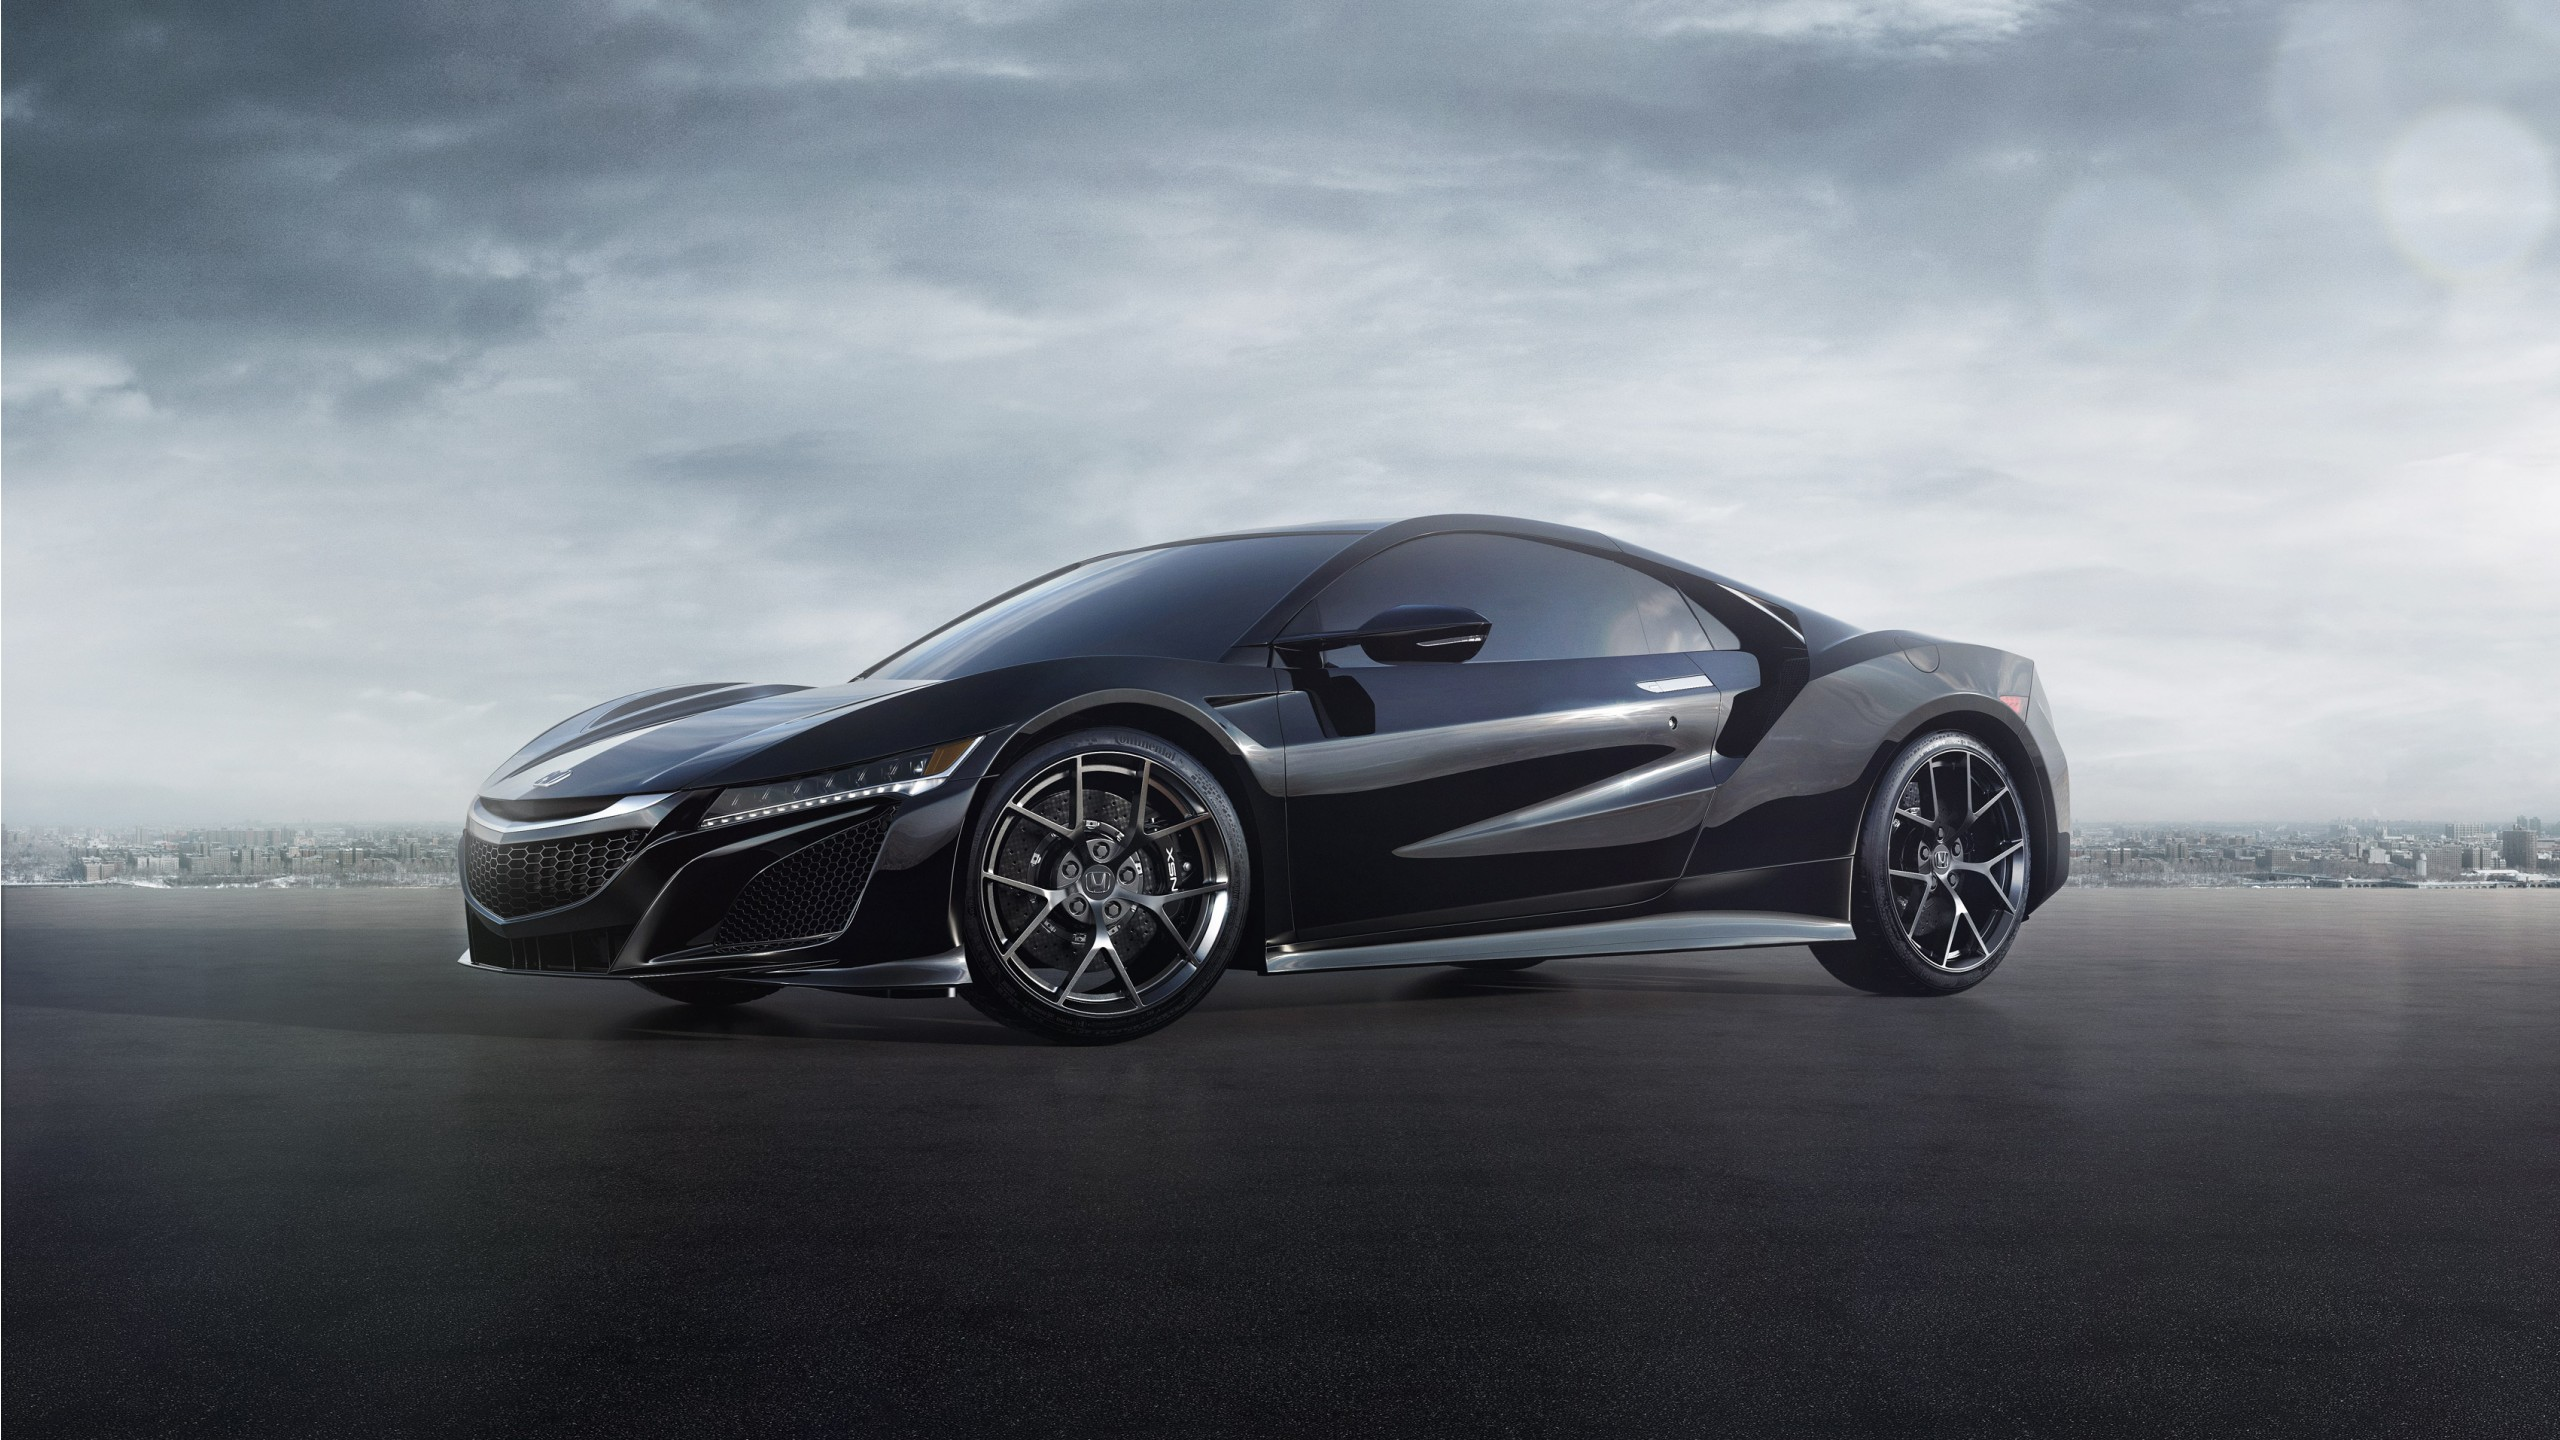 Top Hd Wallpapers Cars Wallpapers Desktop Hd: Honda NSX 2018 Wallpaper